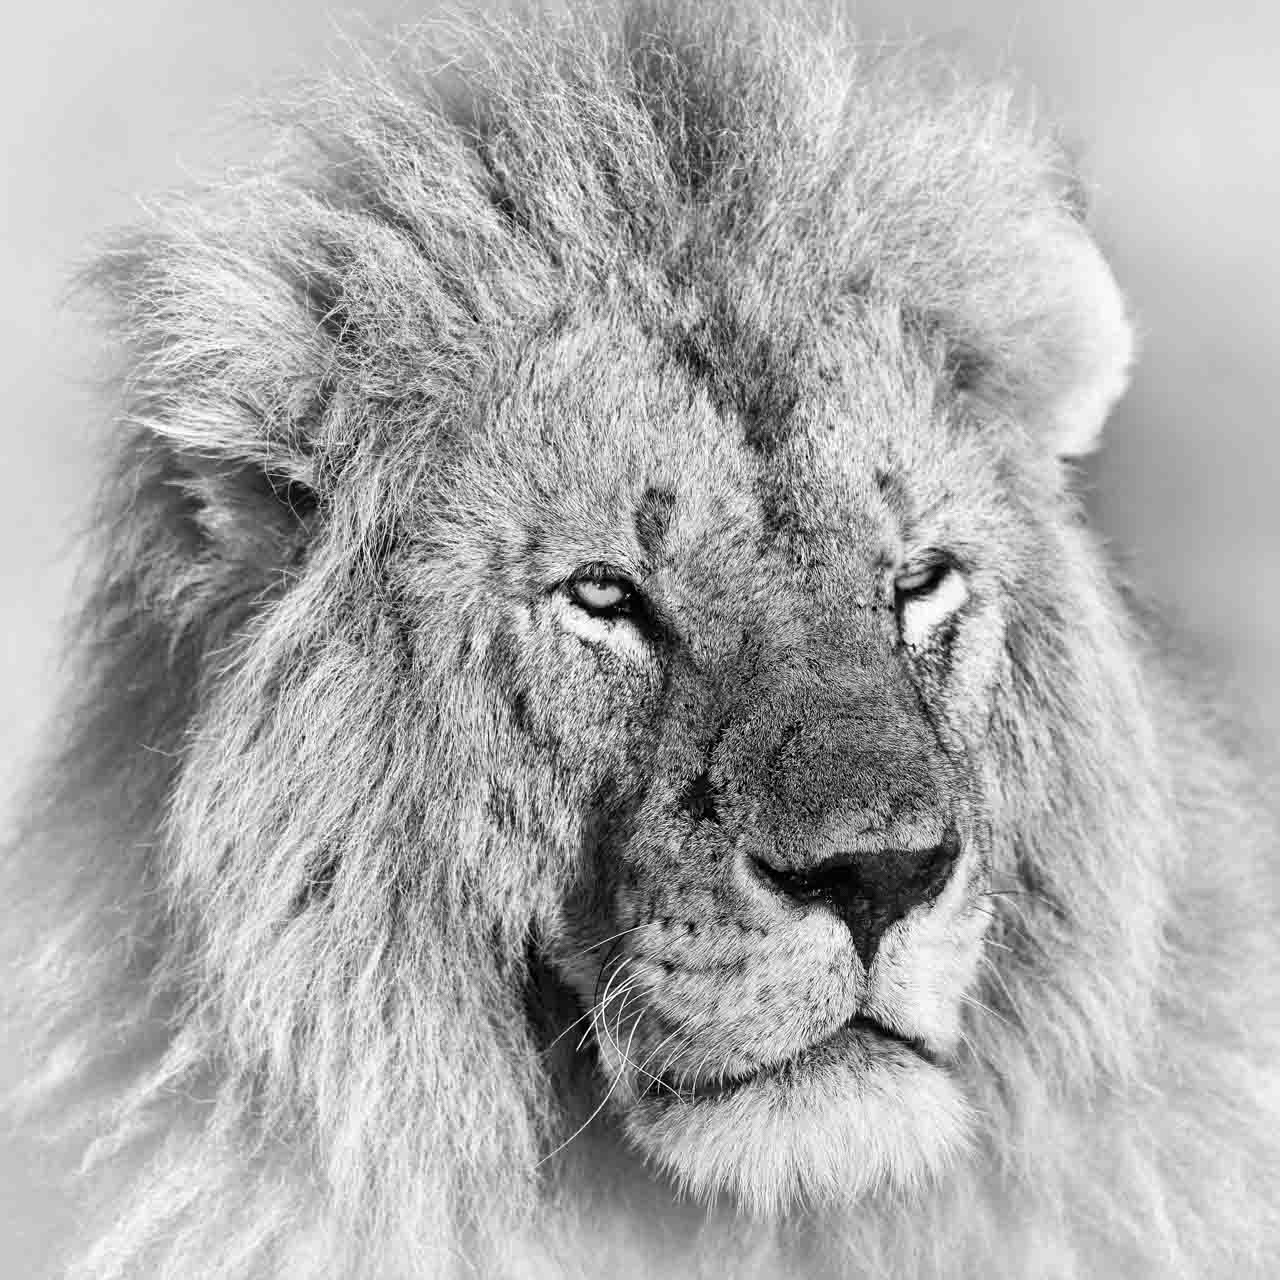 Lion in black and white in Kenya. Photograph by Amar Guillen, photographer artist.